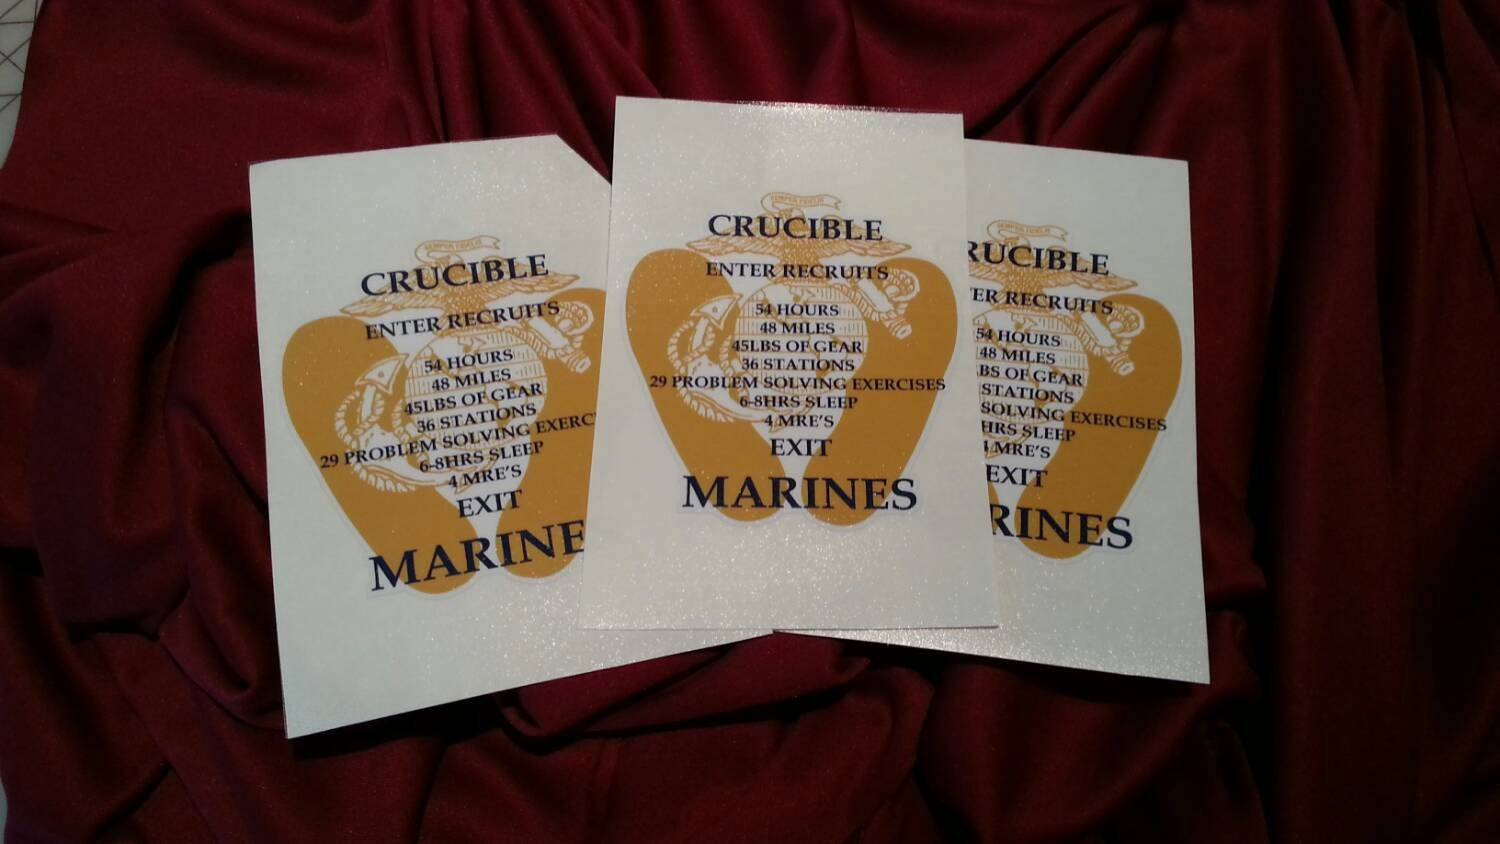 picture about Crucible Candle Printable titled United Says Maritime Corps (USMC) Crucible Candle Decal (RATIONED MREs)